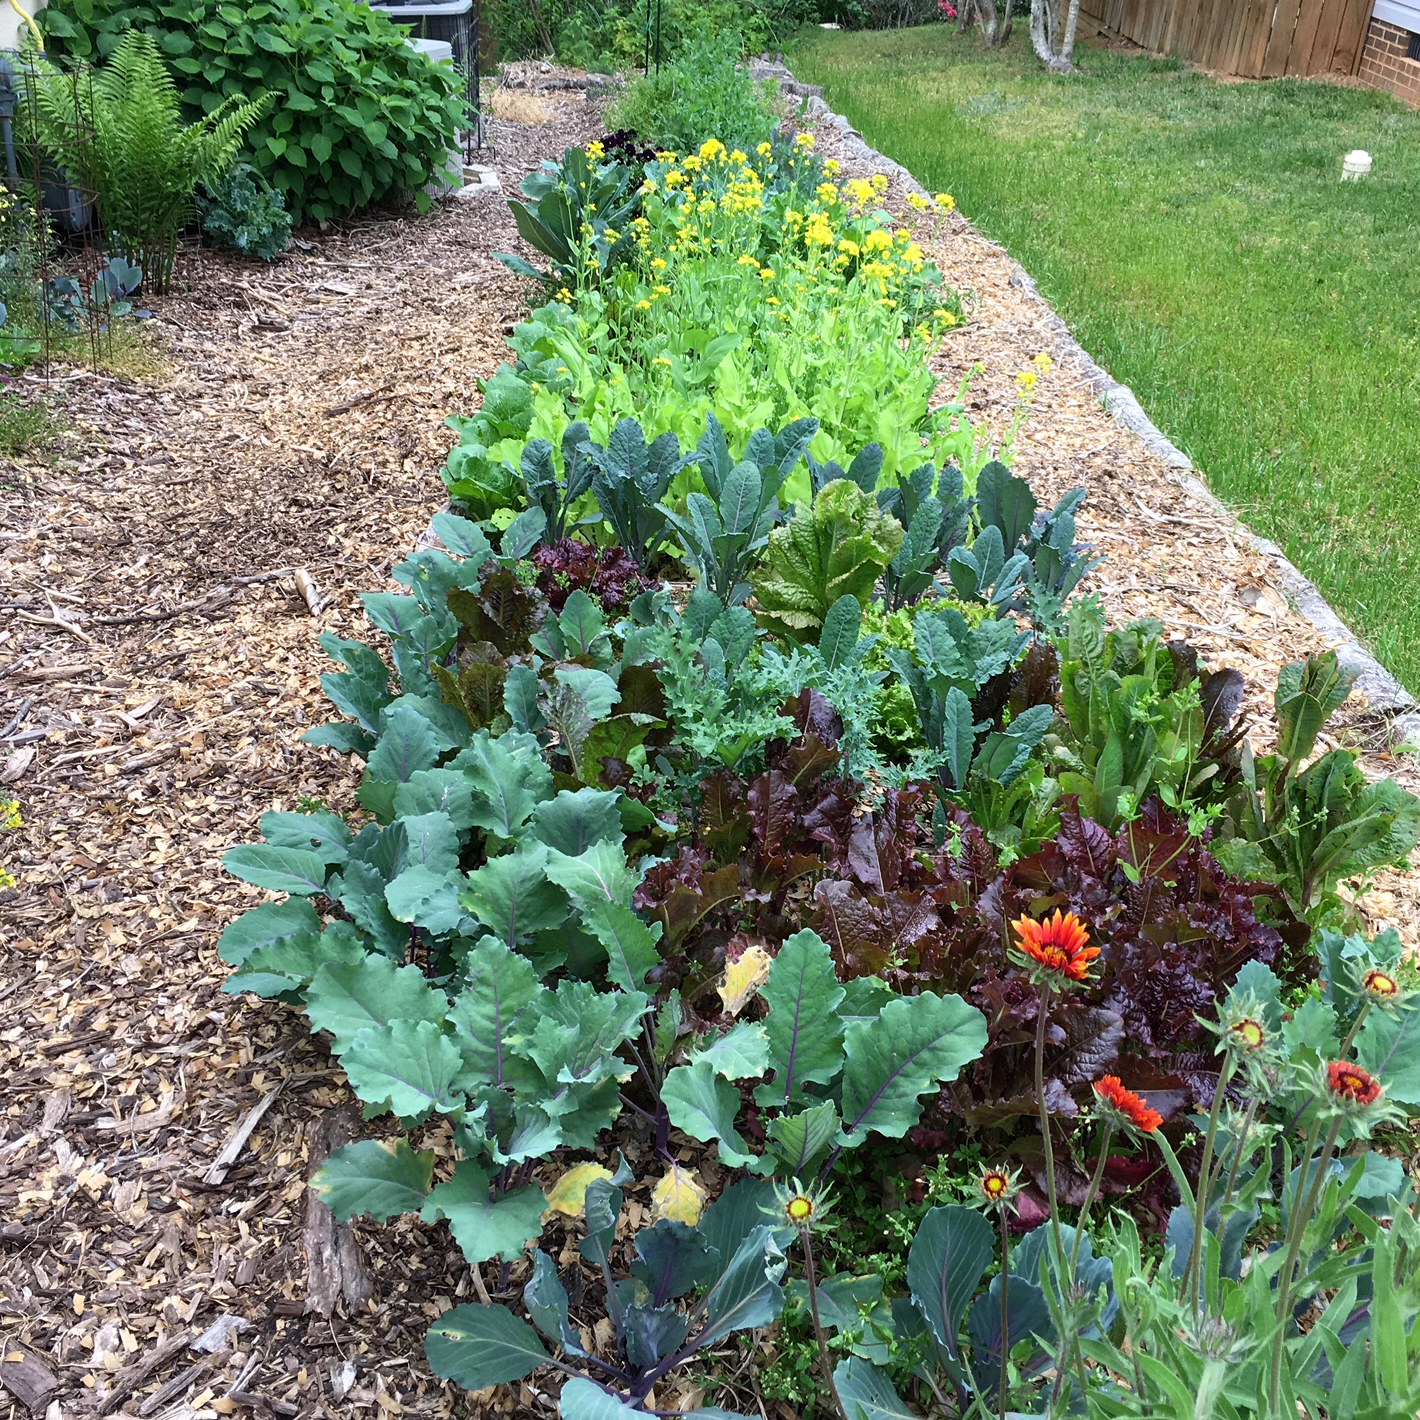 A bed of cool weather crops in our spring garden.